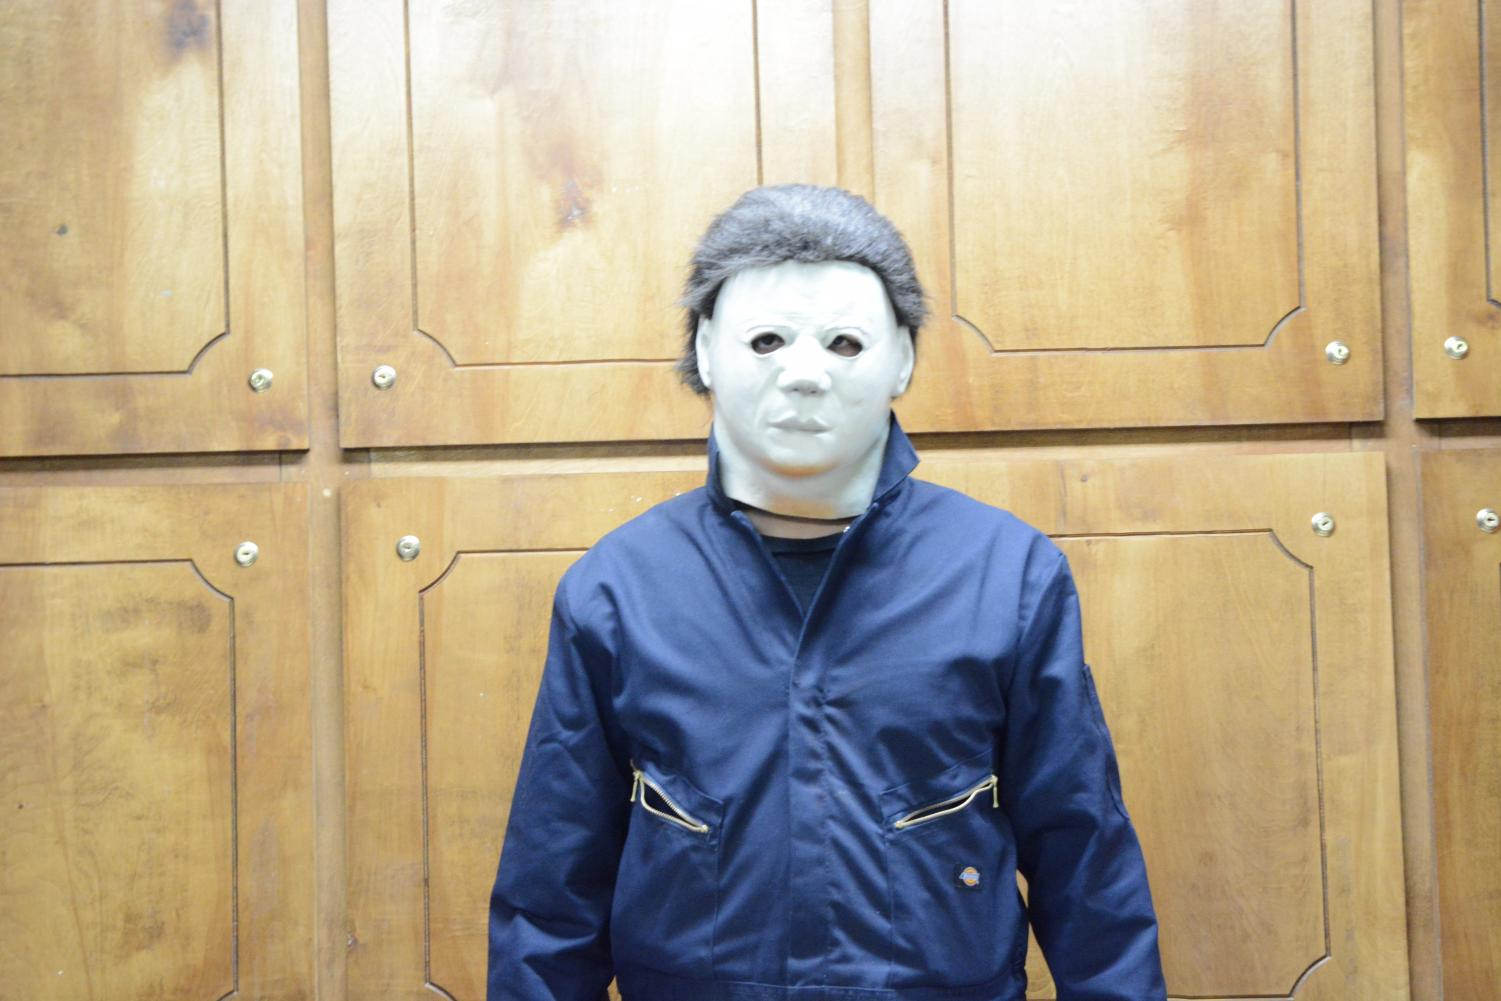 %22The+scariest+thing+I+have+been+for+Halloween+is+my+Michael+Myers+costume.%22+Markca+Austin